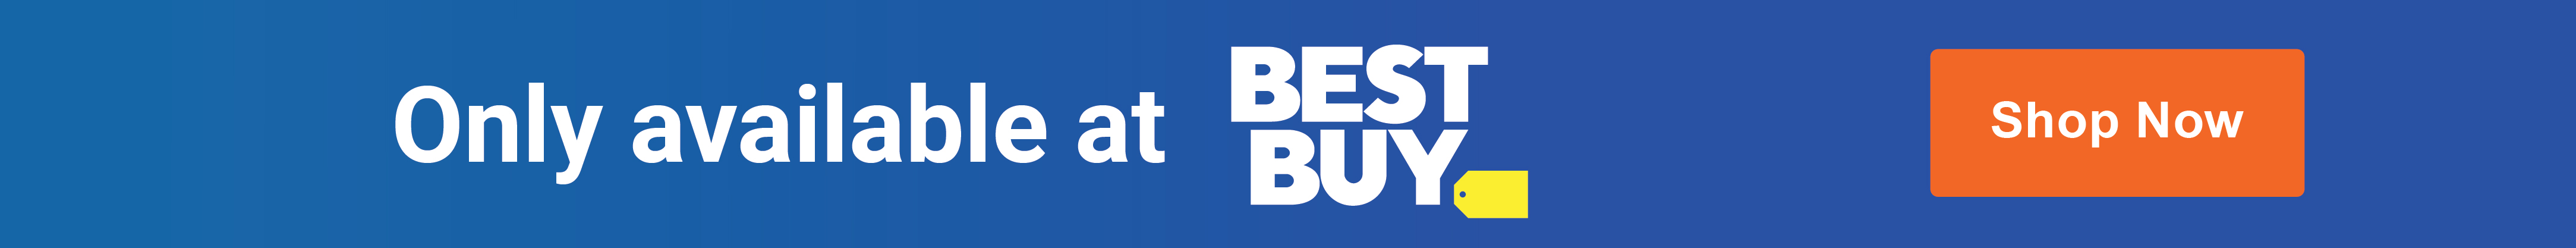 Only at Best Buy - Shop Now